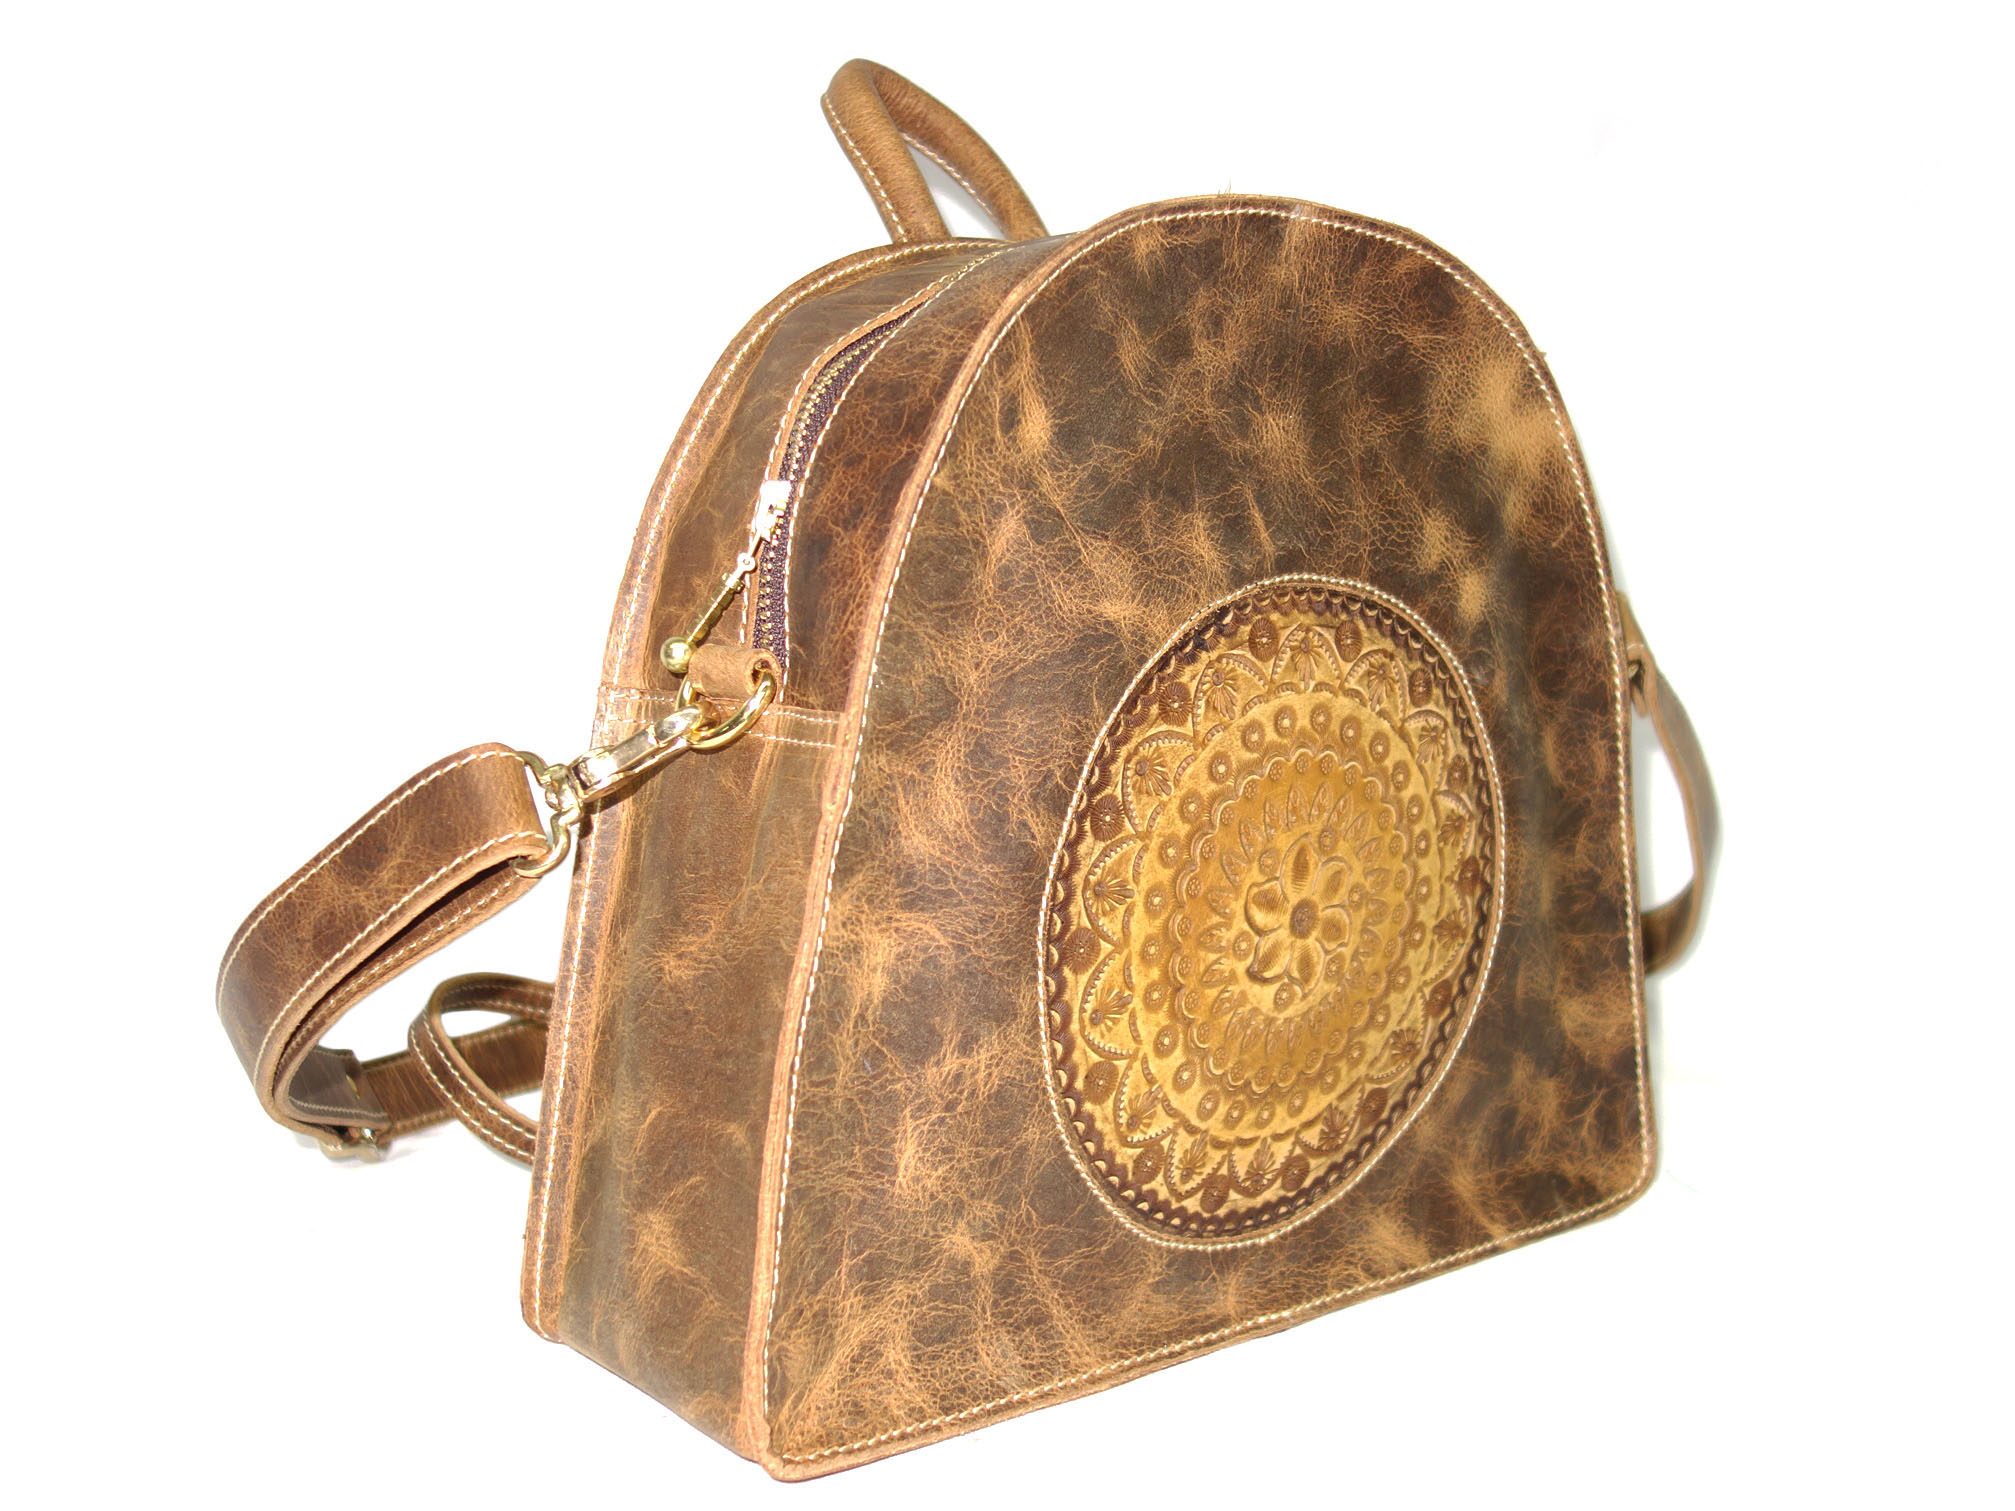 Handmade Bag Genuine Leather Handbag, Hand Crafted and Color with Shoulder Strap for Woman Vintage Finish (Mustard)